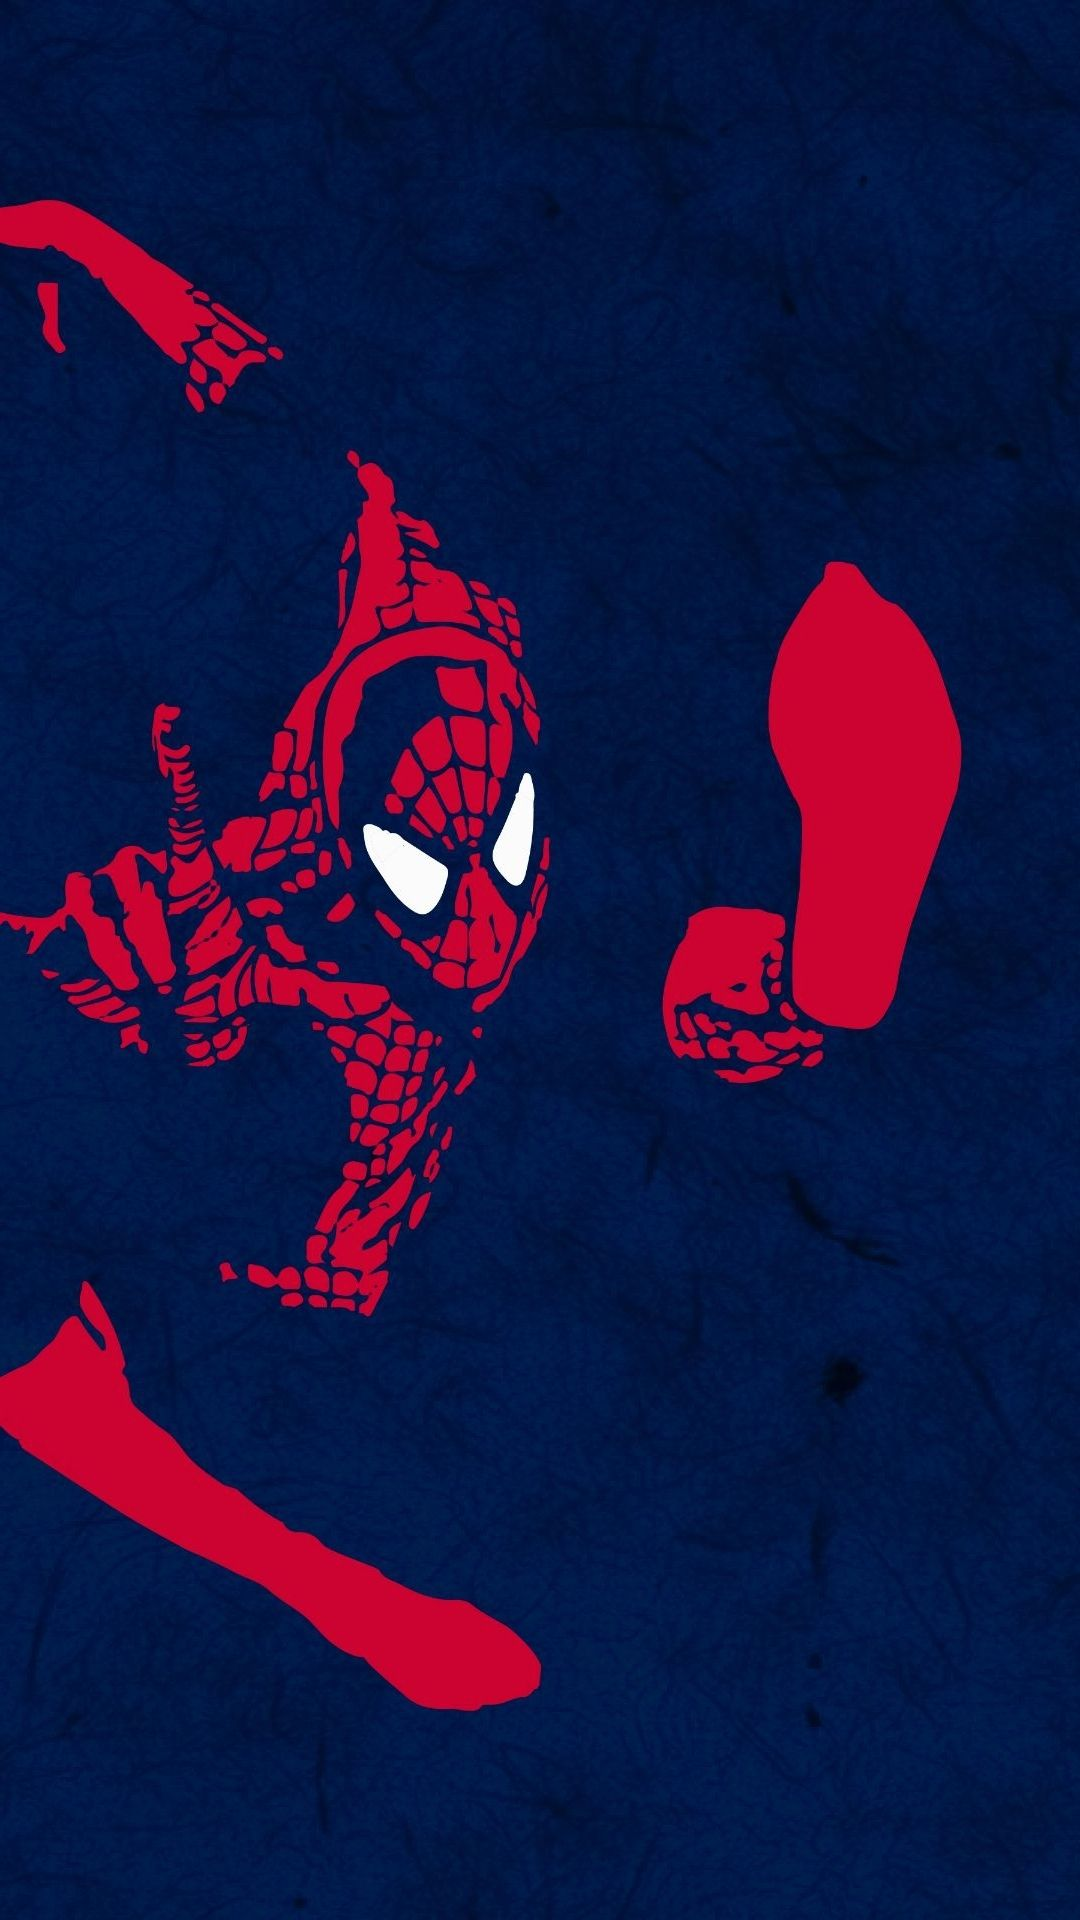 Spiderman Art Tap to see more of the amazing spiderman